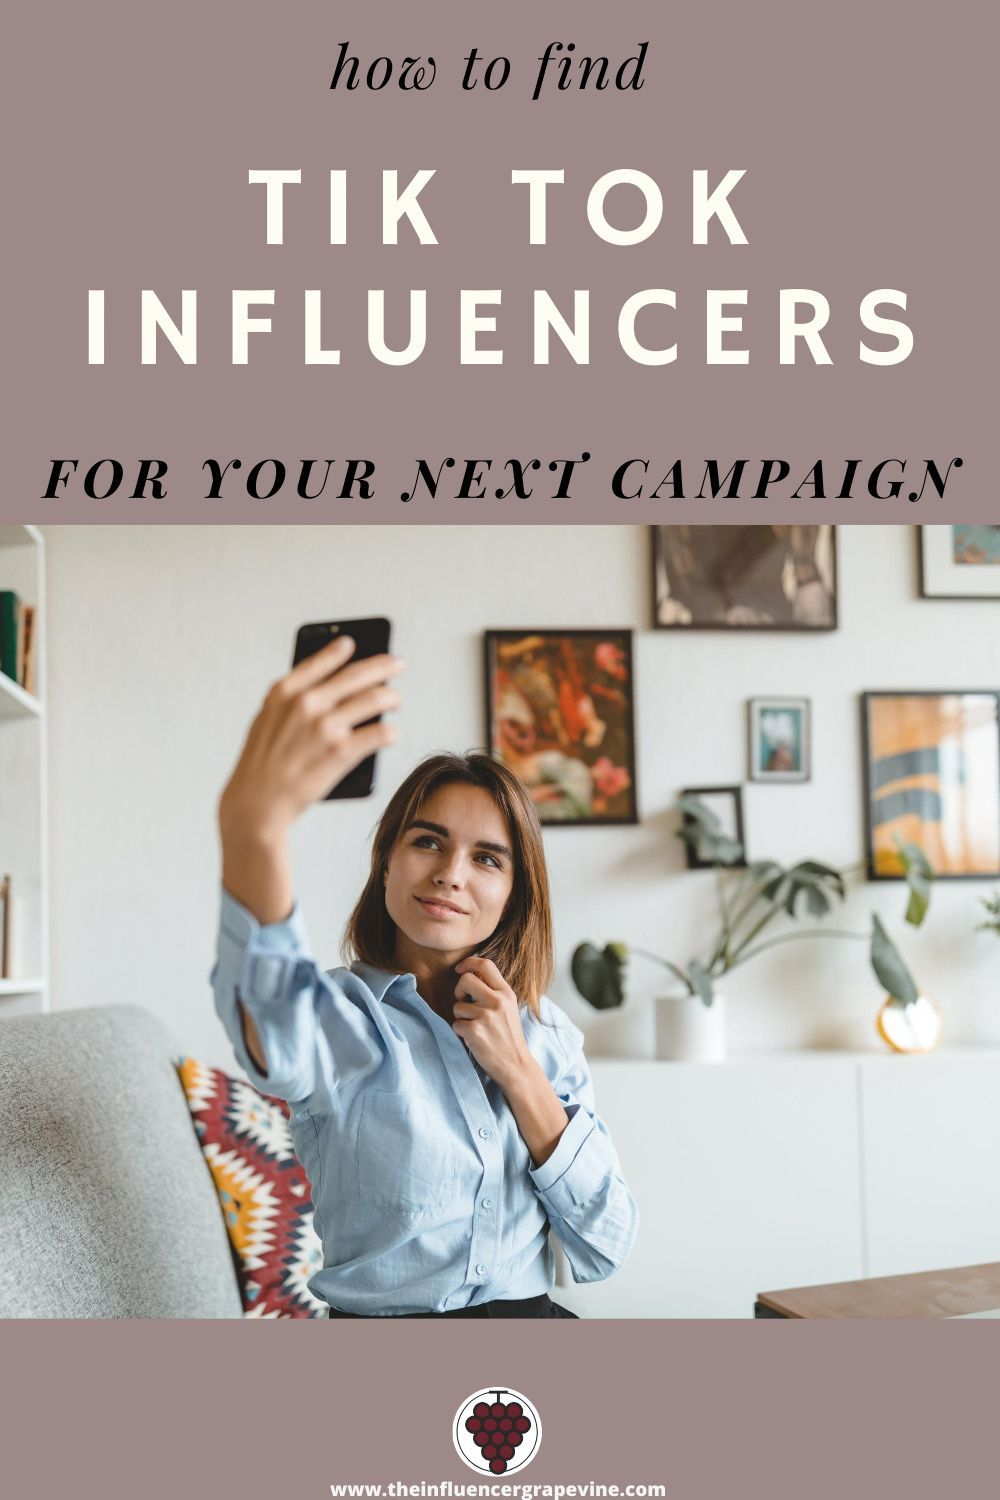 Tik Tok Influencers How To Find Them For Your Marketing Campaign Marketing Campaigns How To Influence People Influencer Marketing